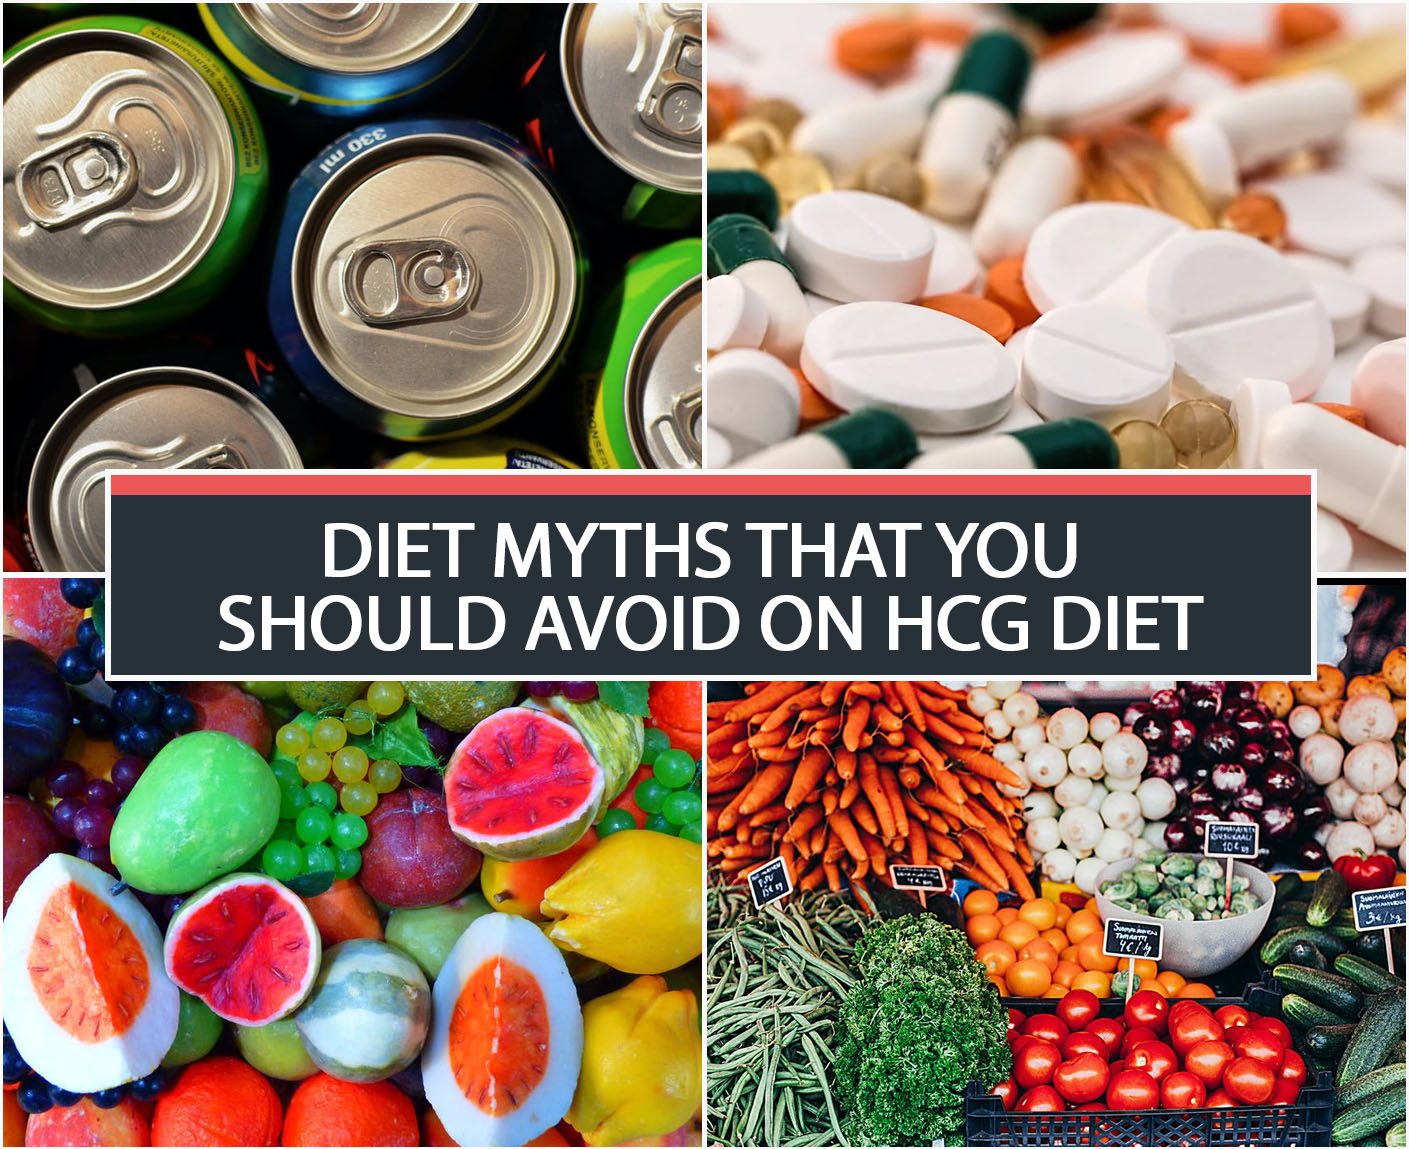 DIET MYTHS THAT YOU SHOULD AVOID ON HCG DIET